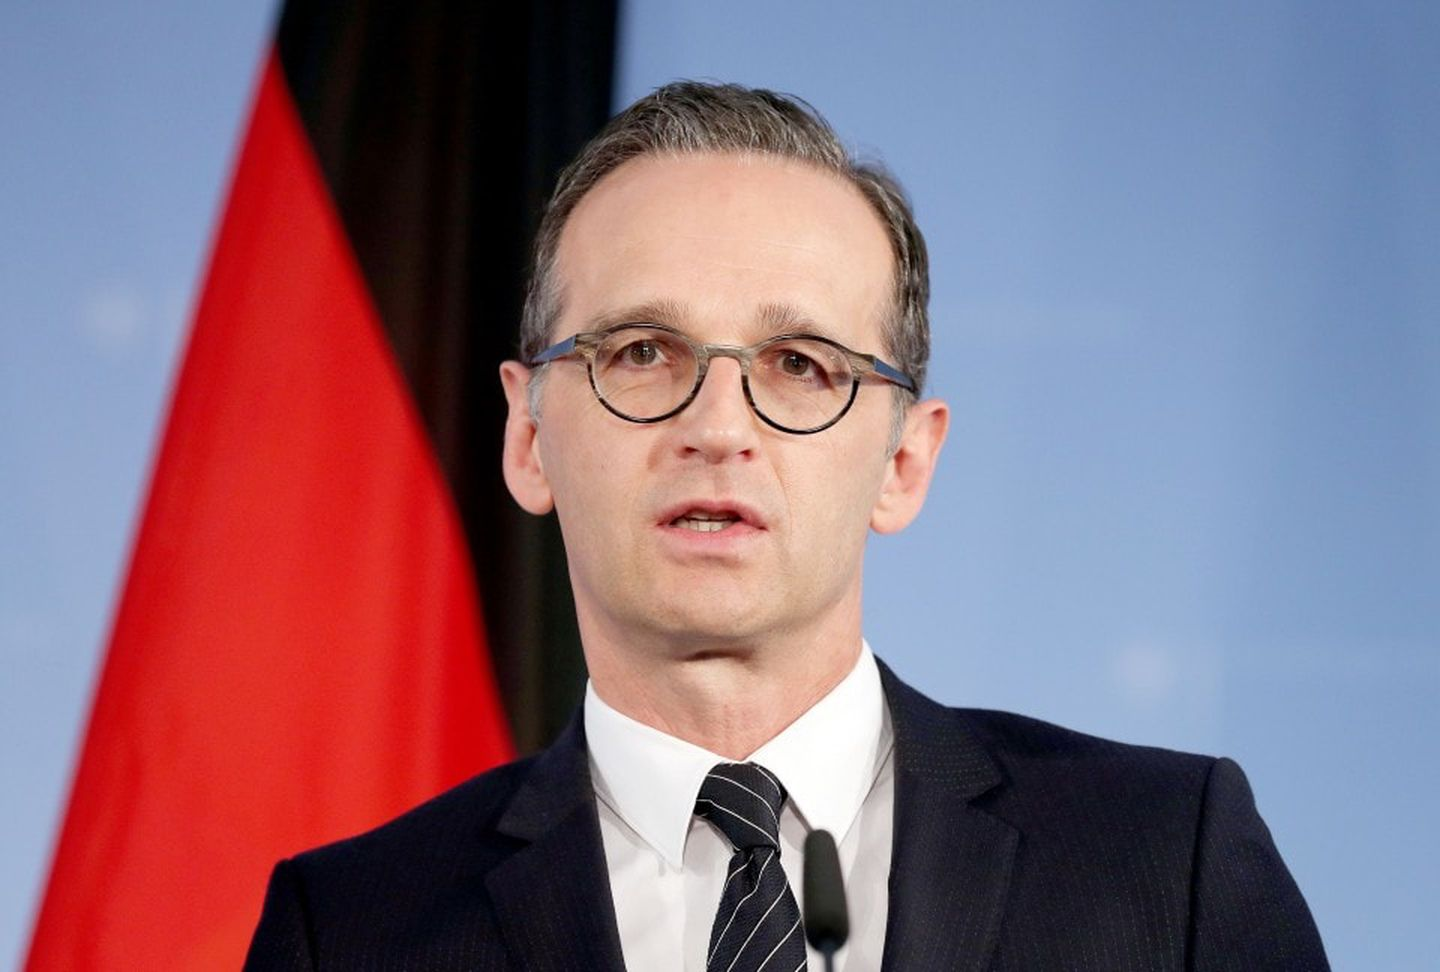 Maas criticized Trump's decision to break off relations with WHO